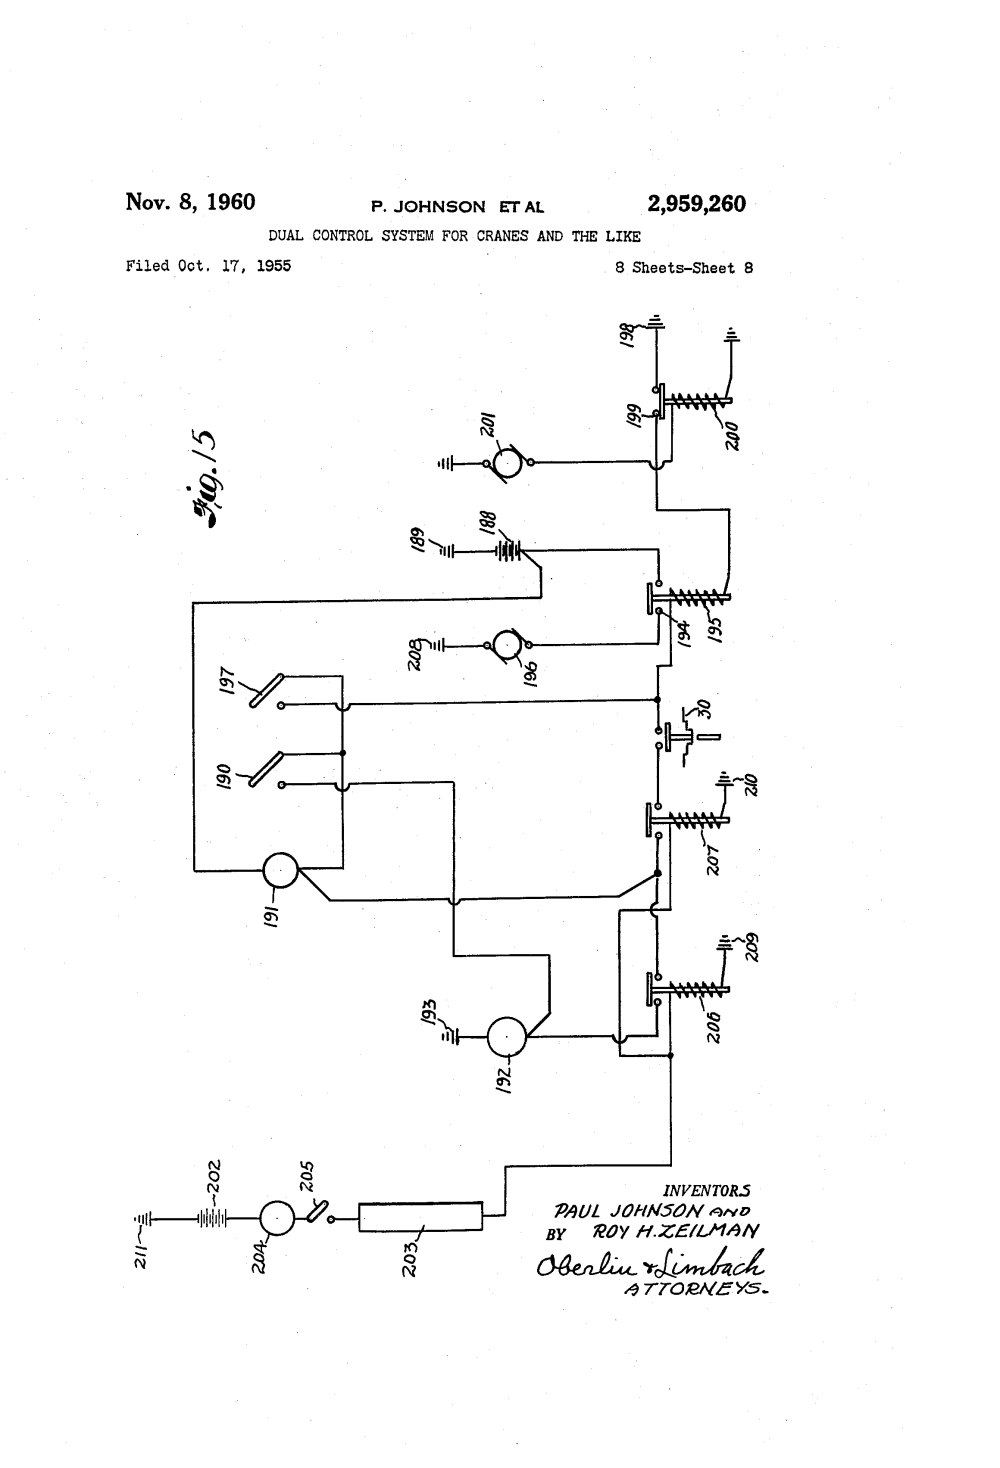 medium resolution of us2959260 7 patent us2959260 dual control system for cranes and the like ze 208s wiring diagram